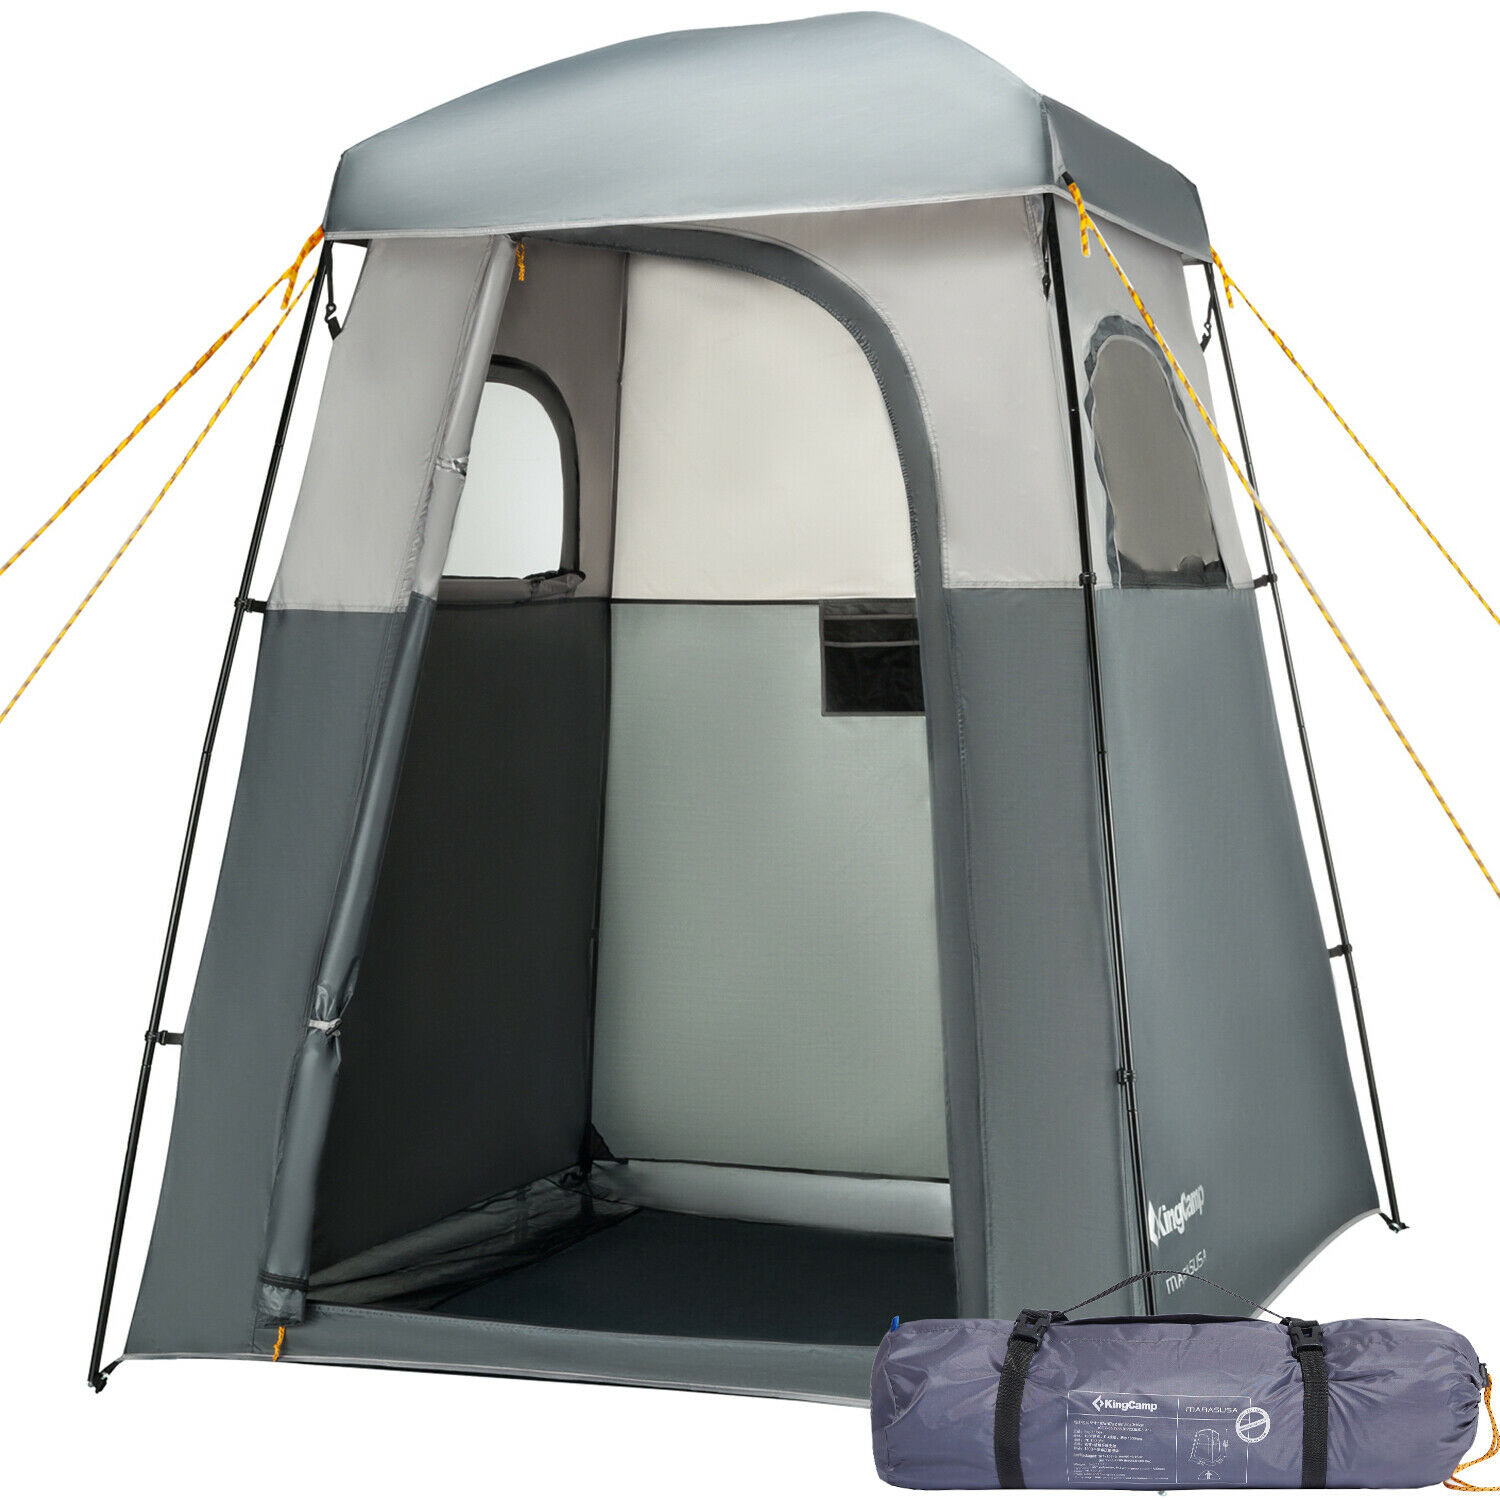 KINGCAMP CAMPING SHOWER Tent Outdoor Changing Privacy Portable ...